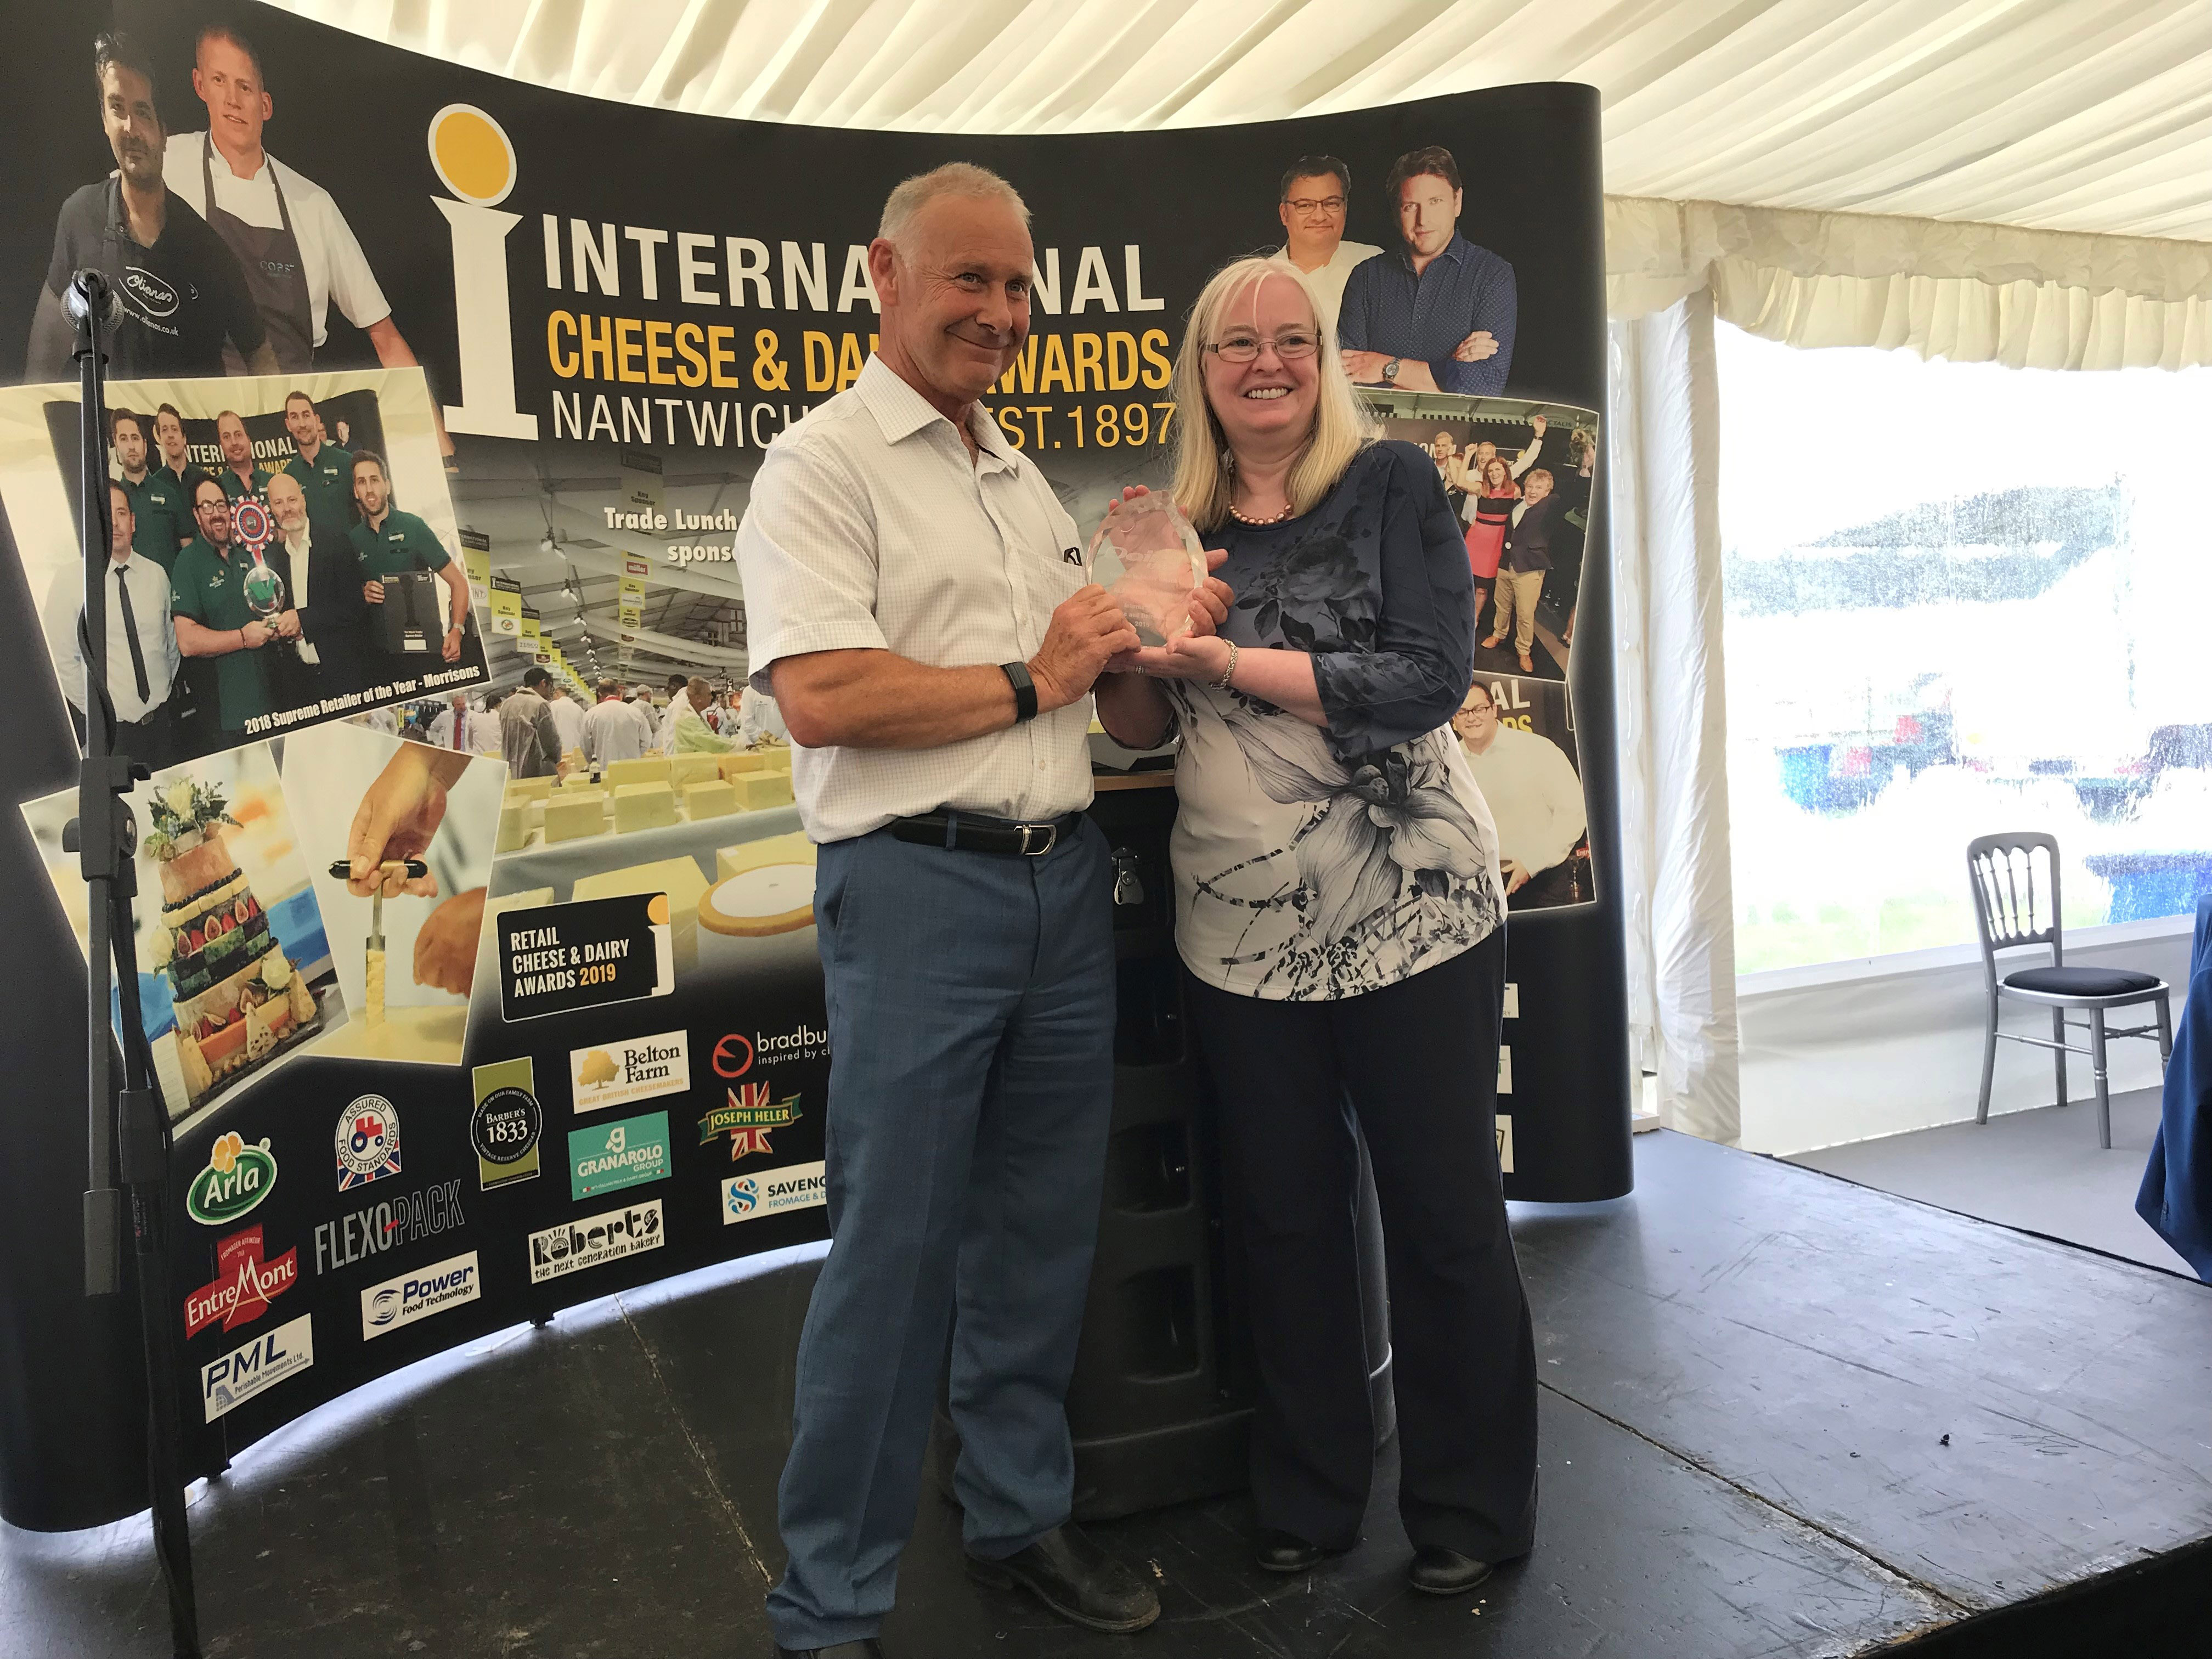 Alan Armstrong receives cheese award from Judith Bryans